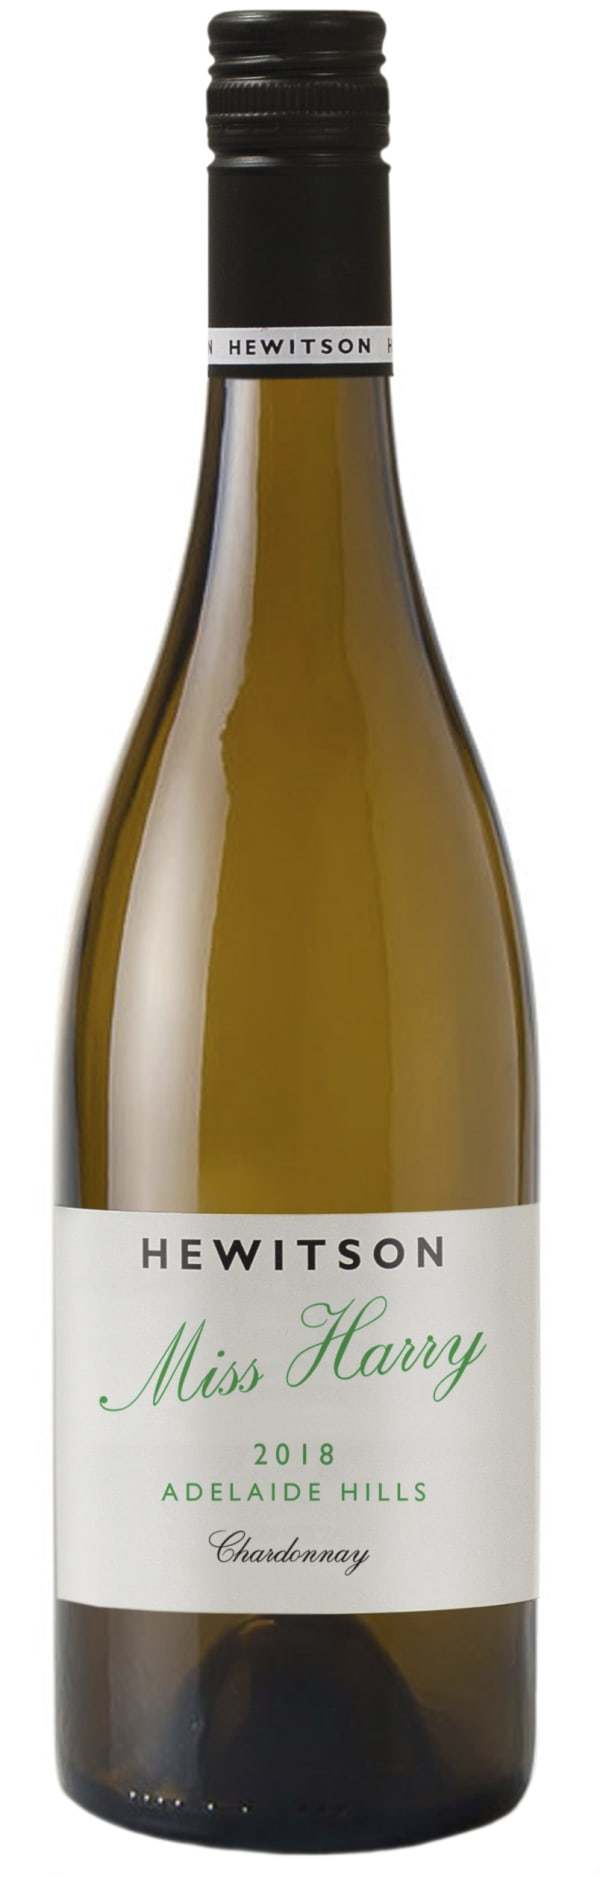 Hewitson Miss Harry Chardonnay 2016